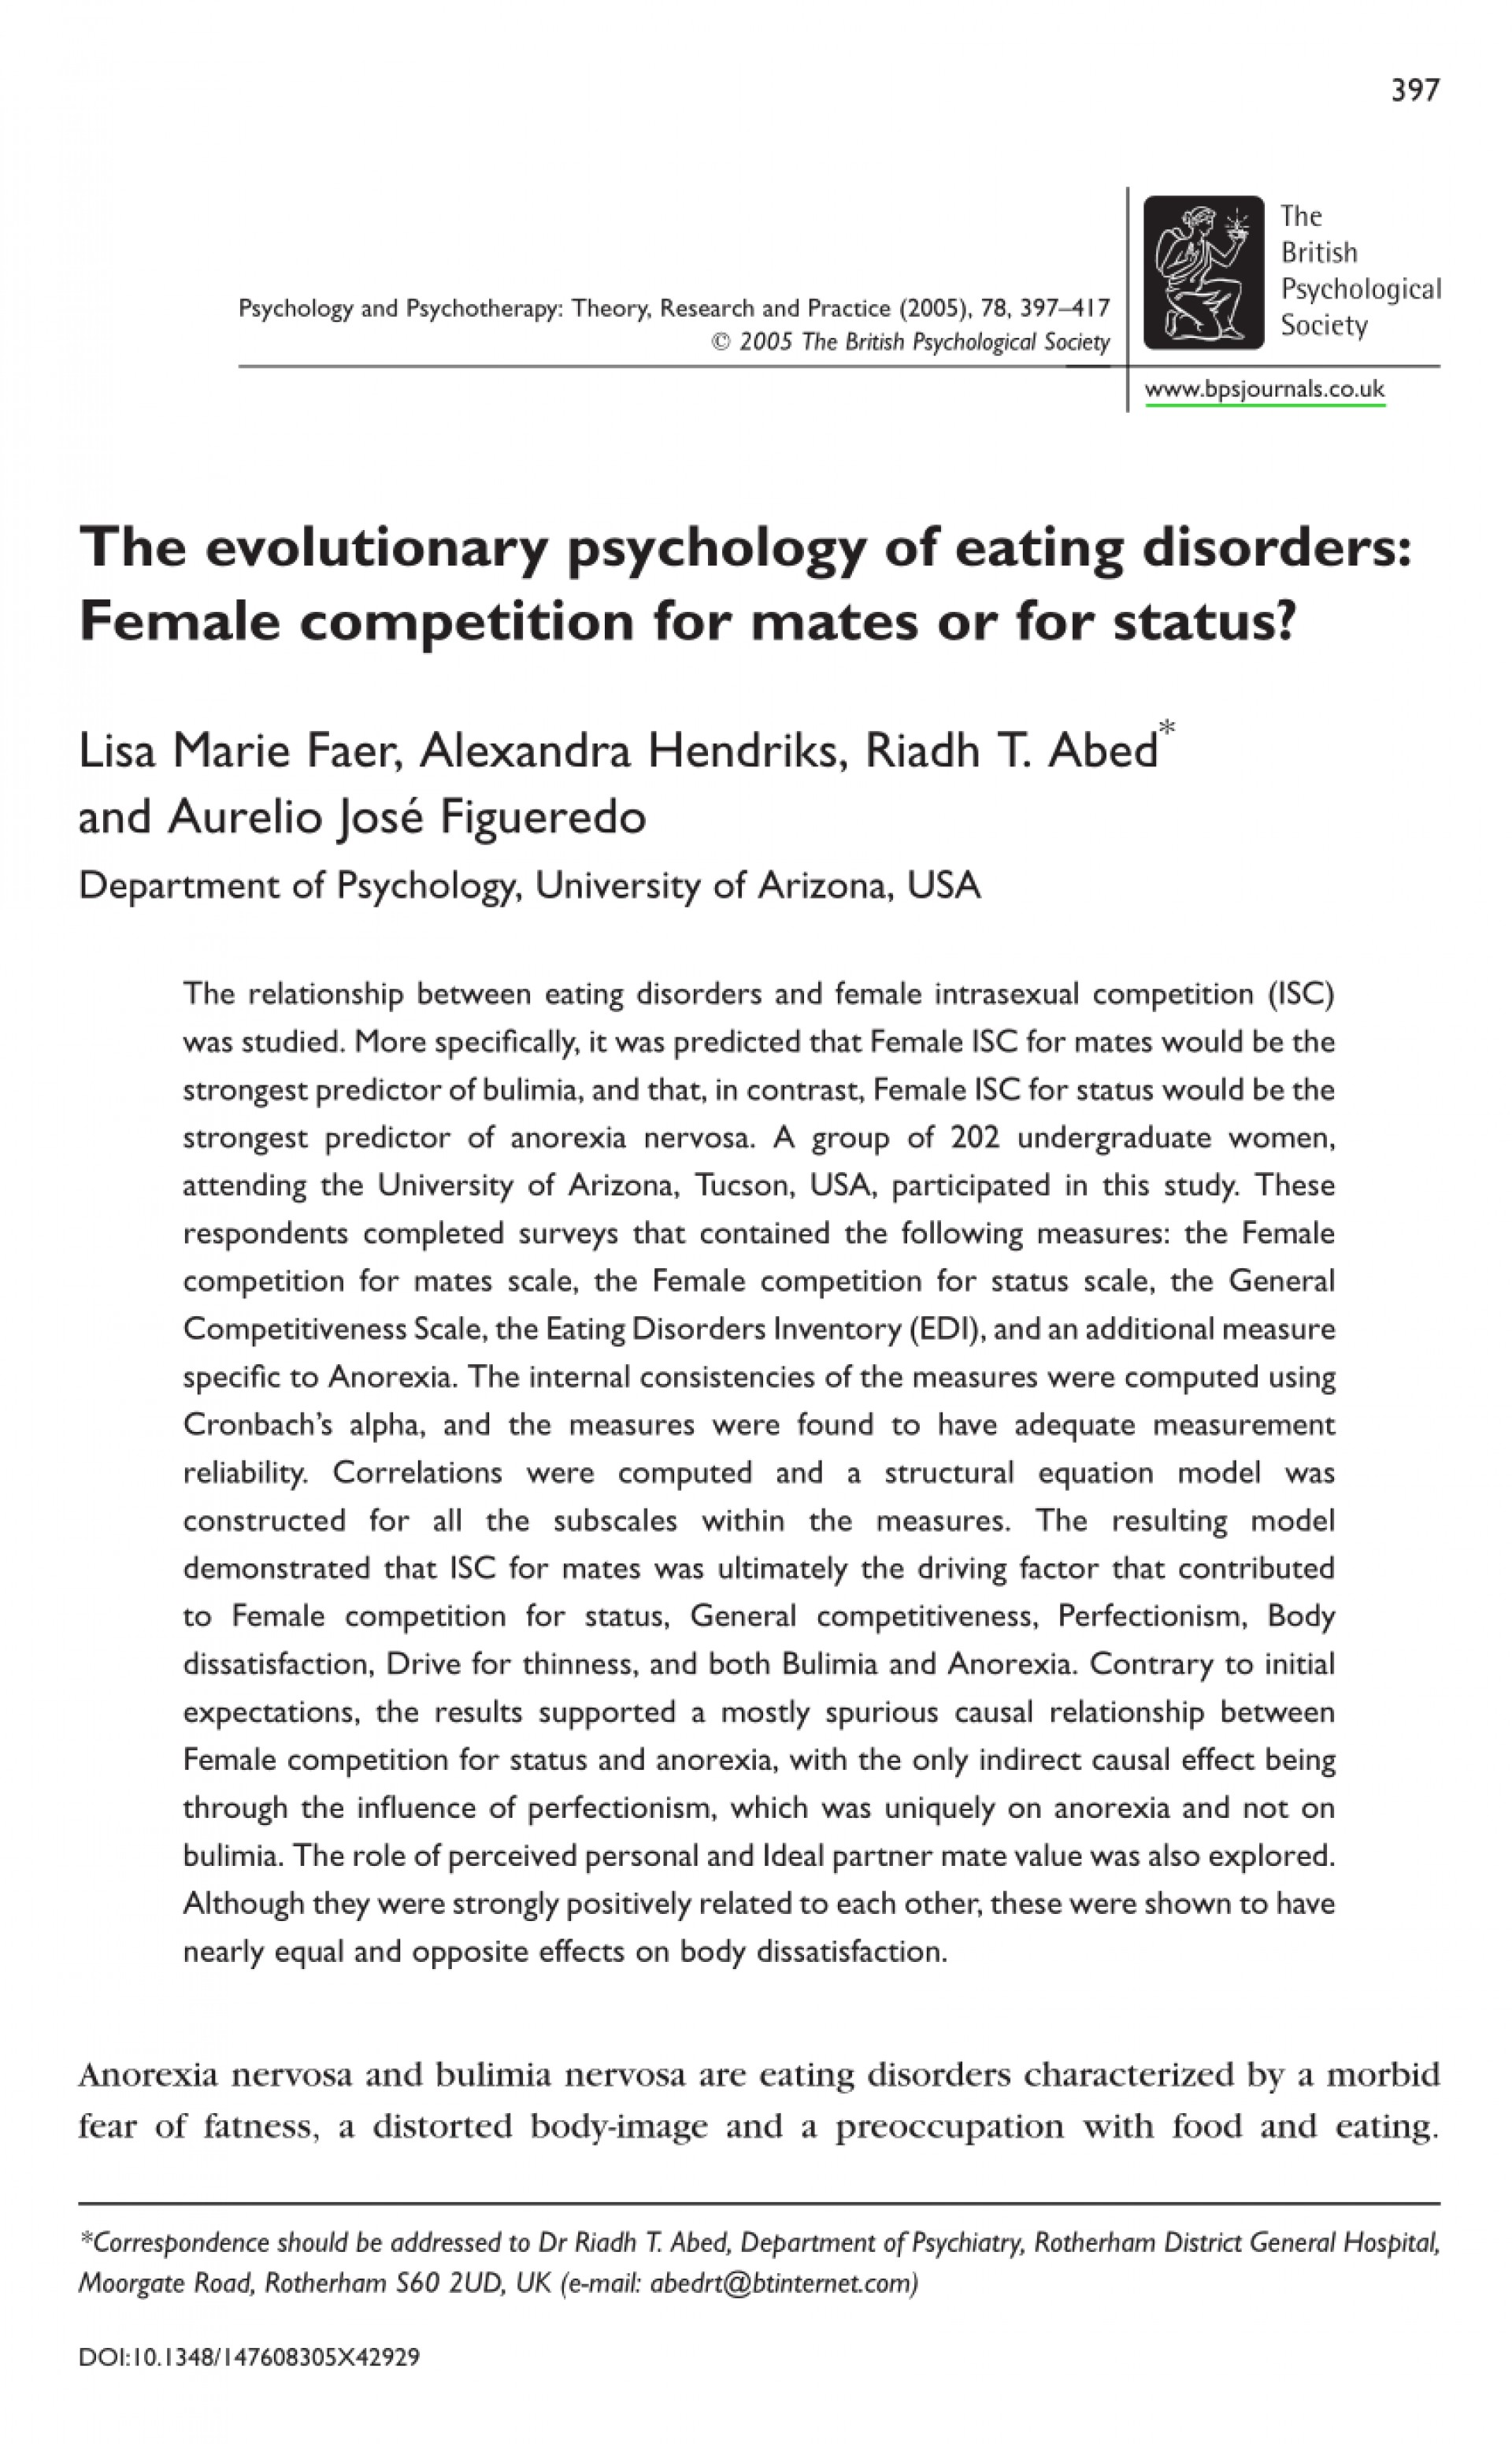 006 Psychology Research Paper On Eating Disorders Top Topics 1920